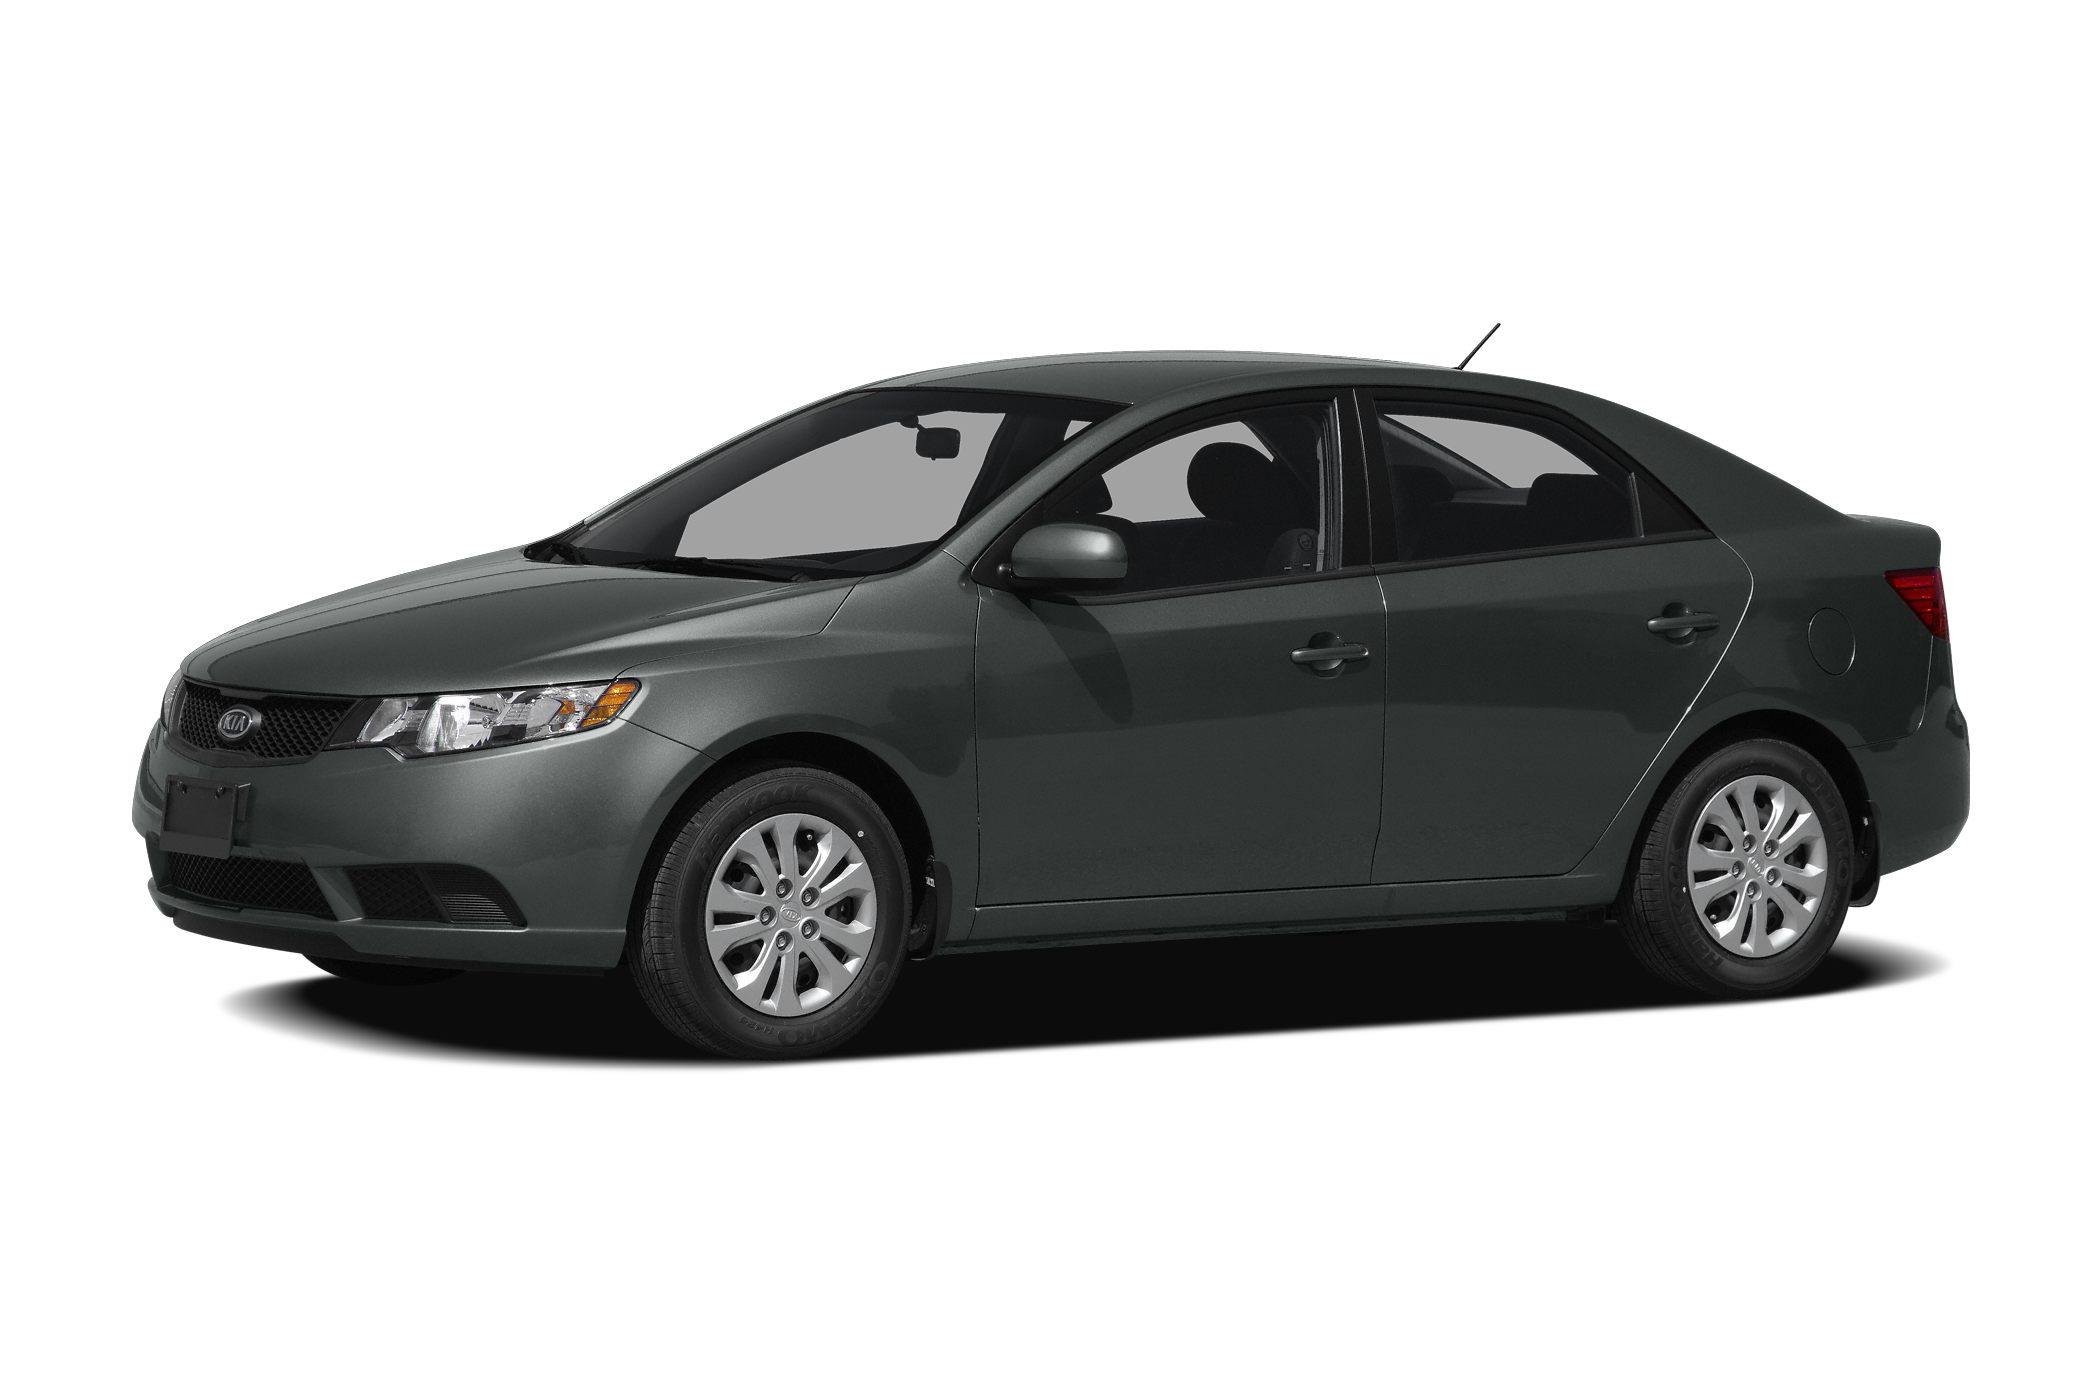 2010 Kia Forte EX Sedan for sale in Columbus for $10,775 with 75,781 miles